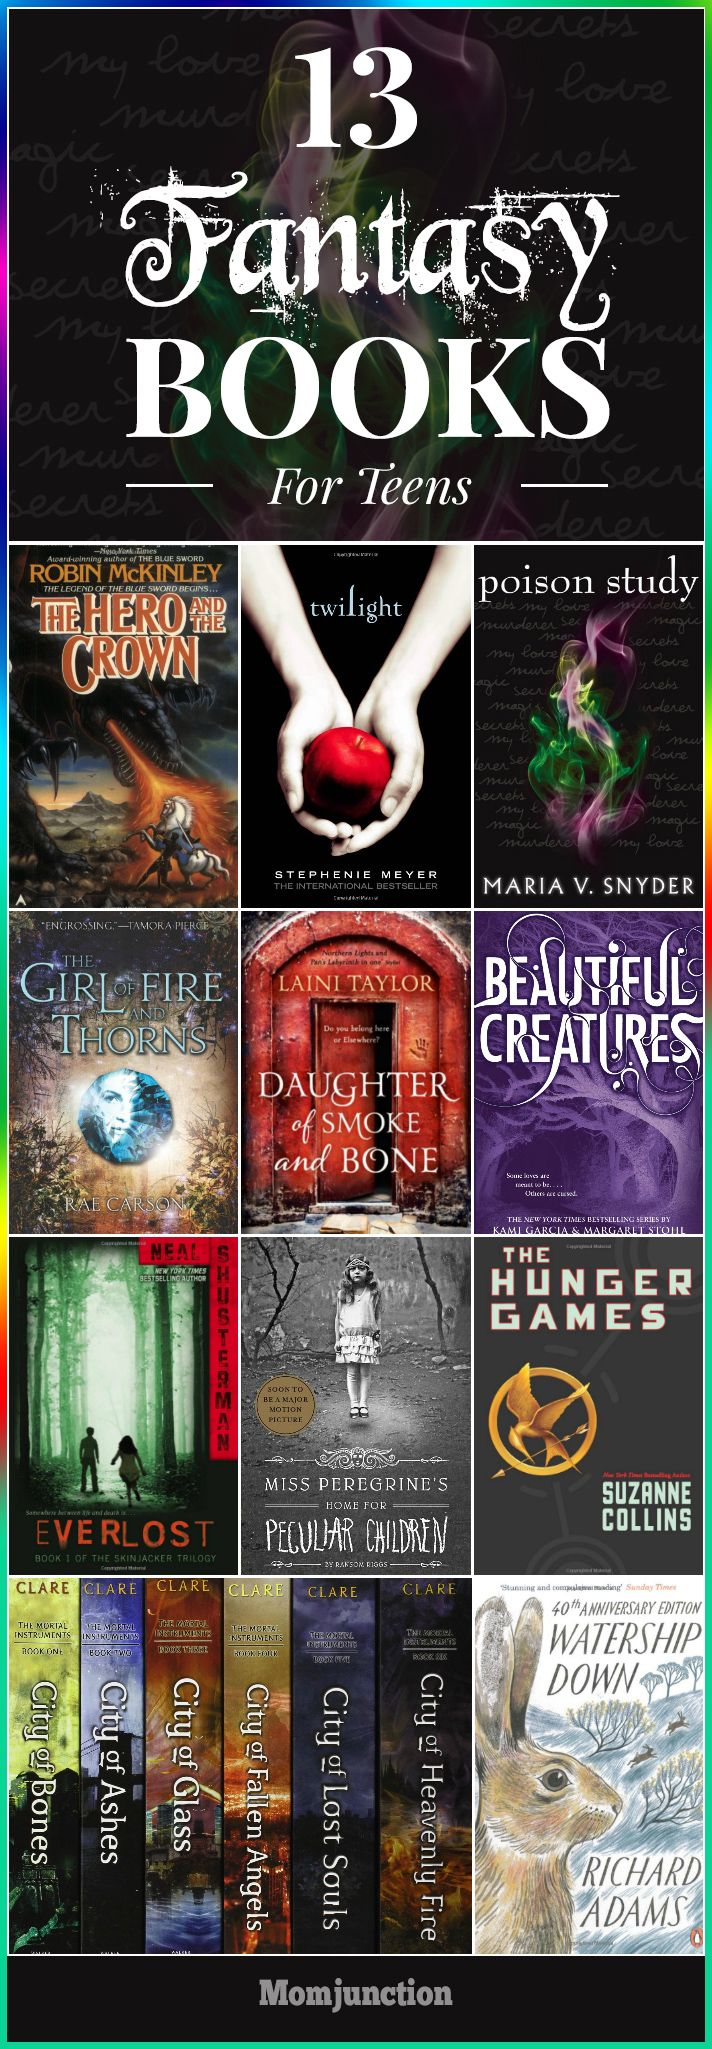 Superpowers, vampires, battles, and creatures. Yes, that's what you get to read in fantasy books for teens. Here's our collection of such fantasy books.